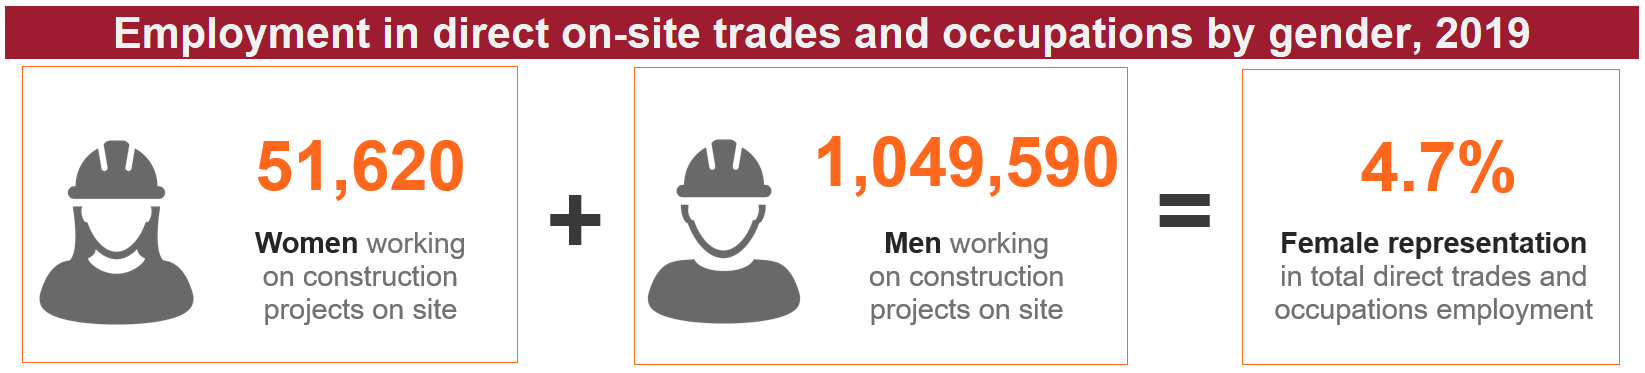 Graphic showing employment in direct on-site trades and occupations by gender in the Canadian construction industry, 2019